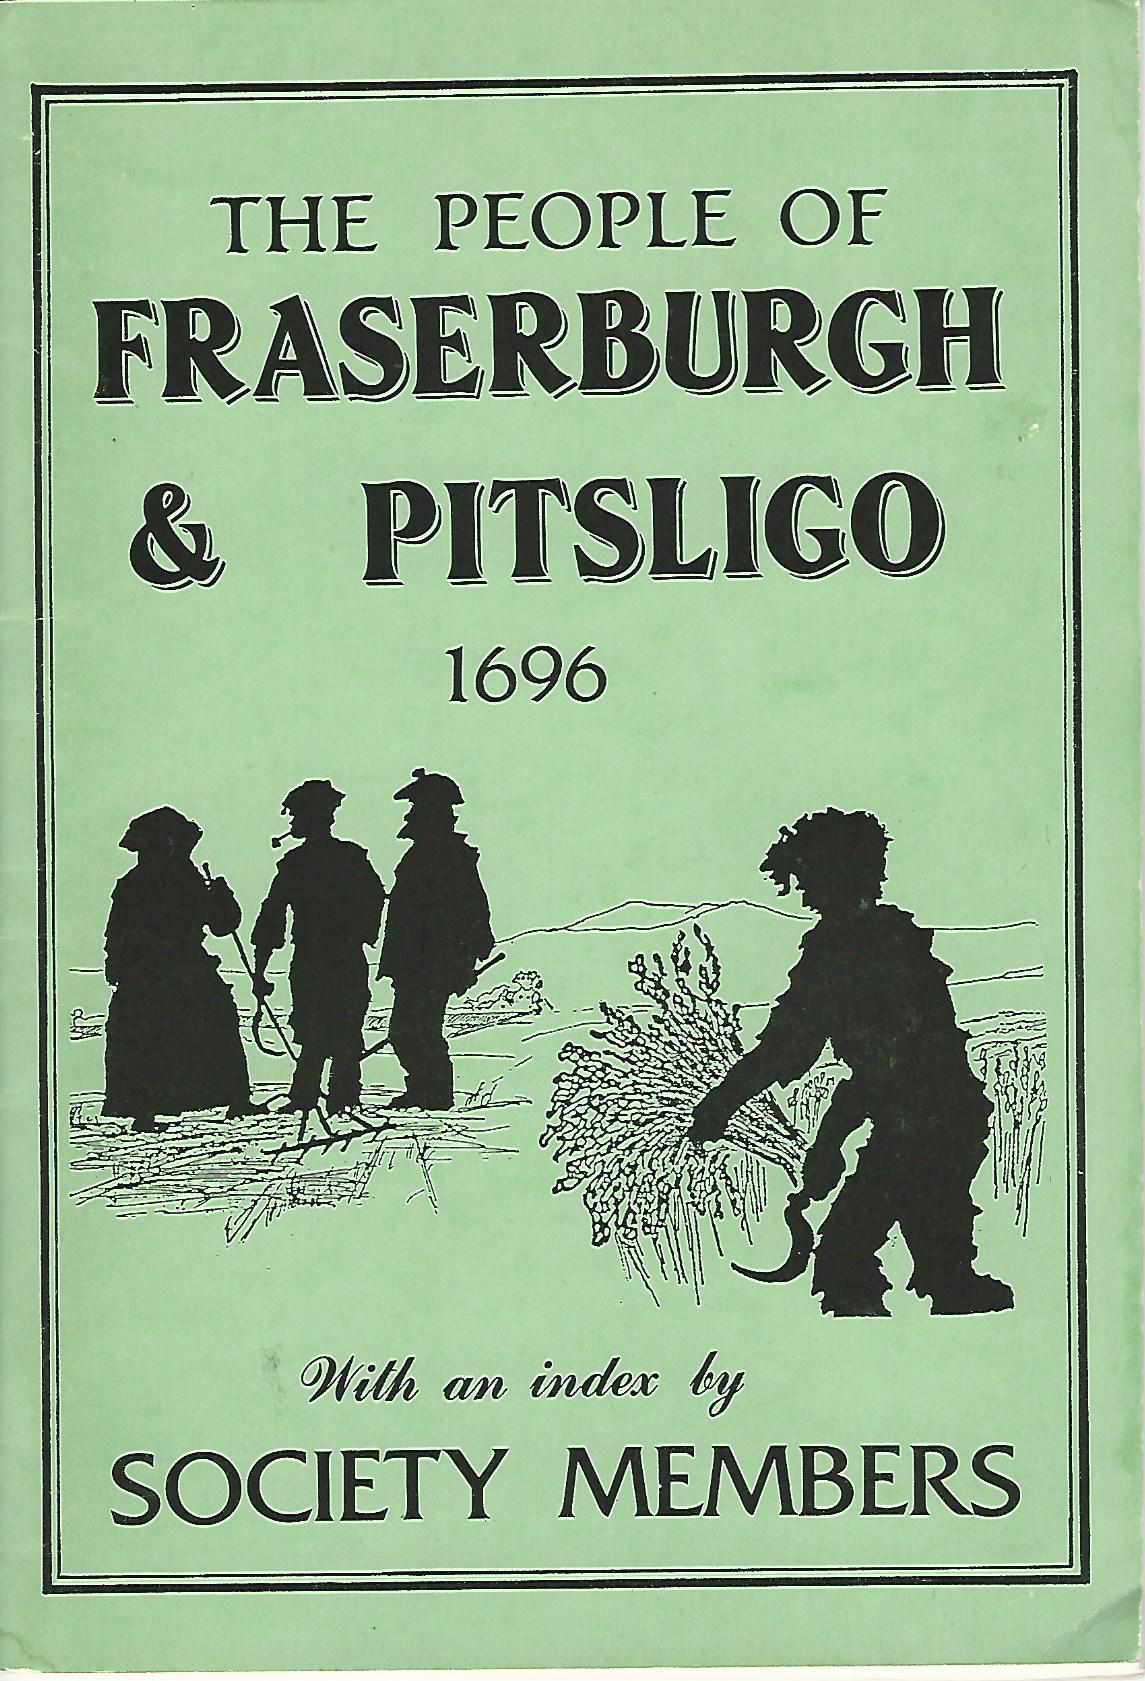 Image for The People of Fraserburgh & Pitsligo 1696.